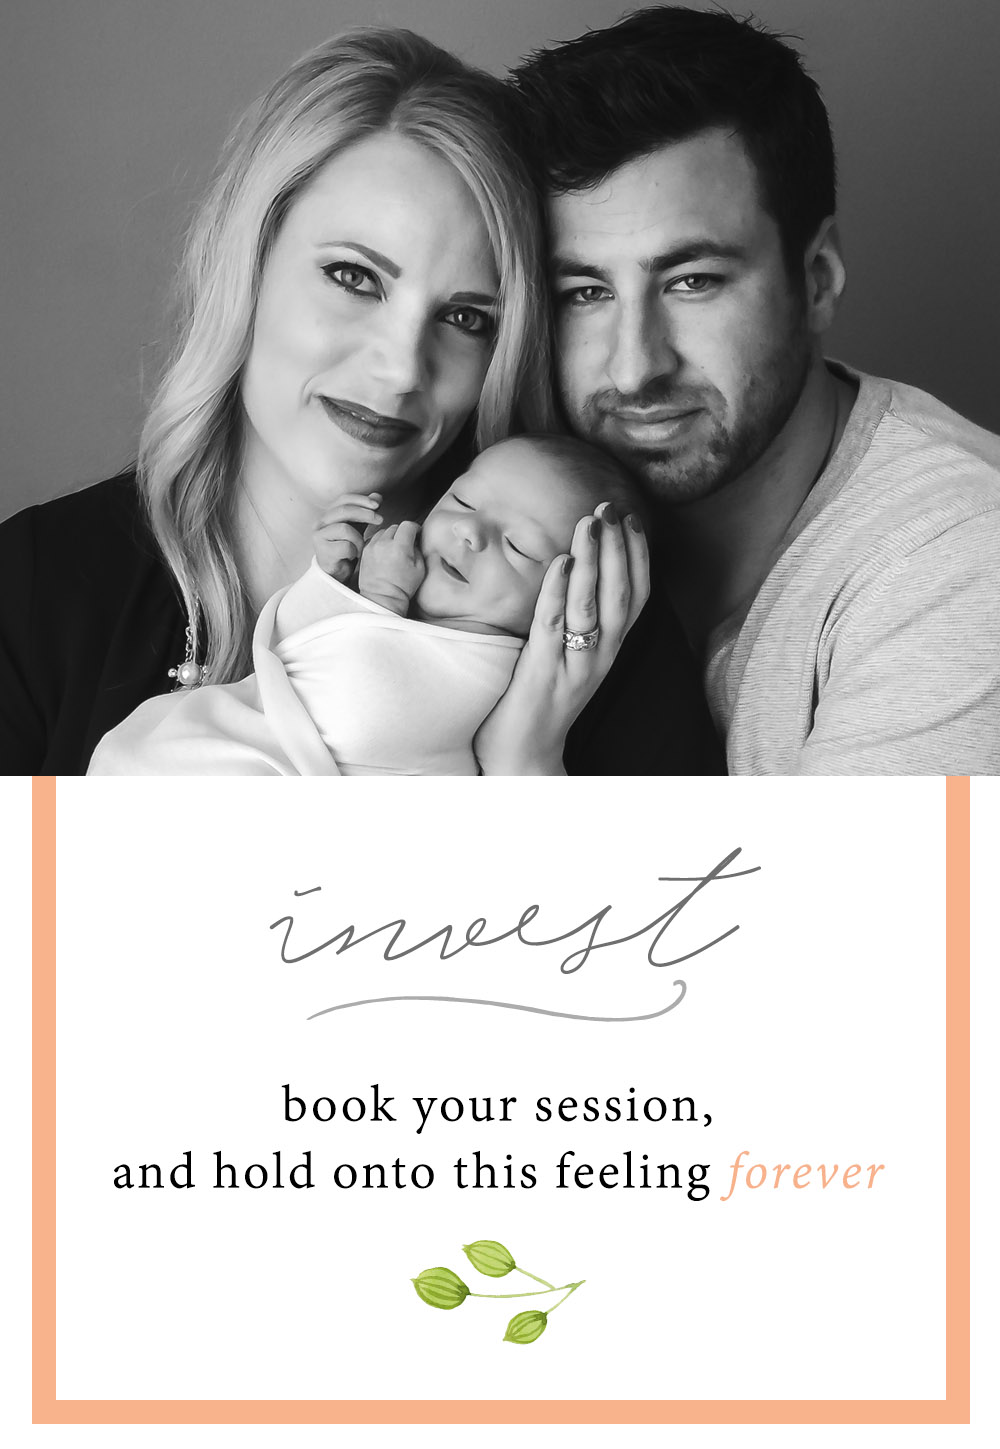 book your newborn session, and hold onto this feeling forever